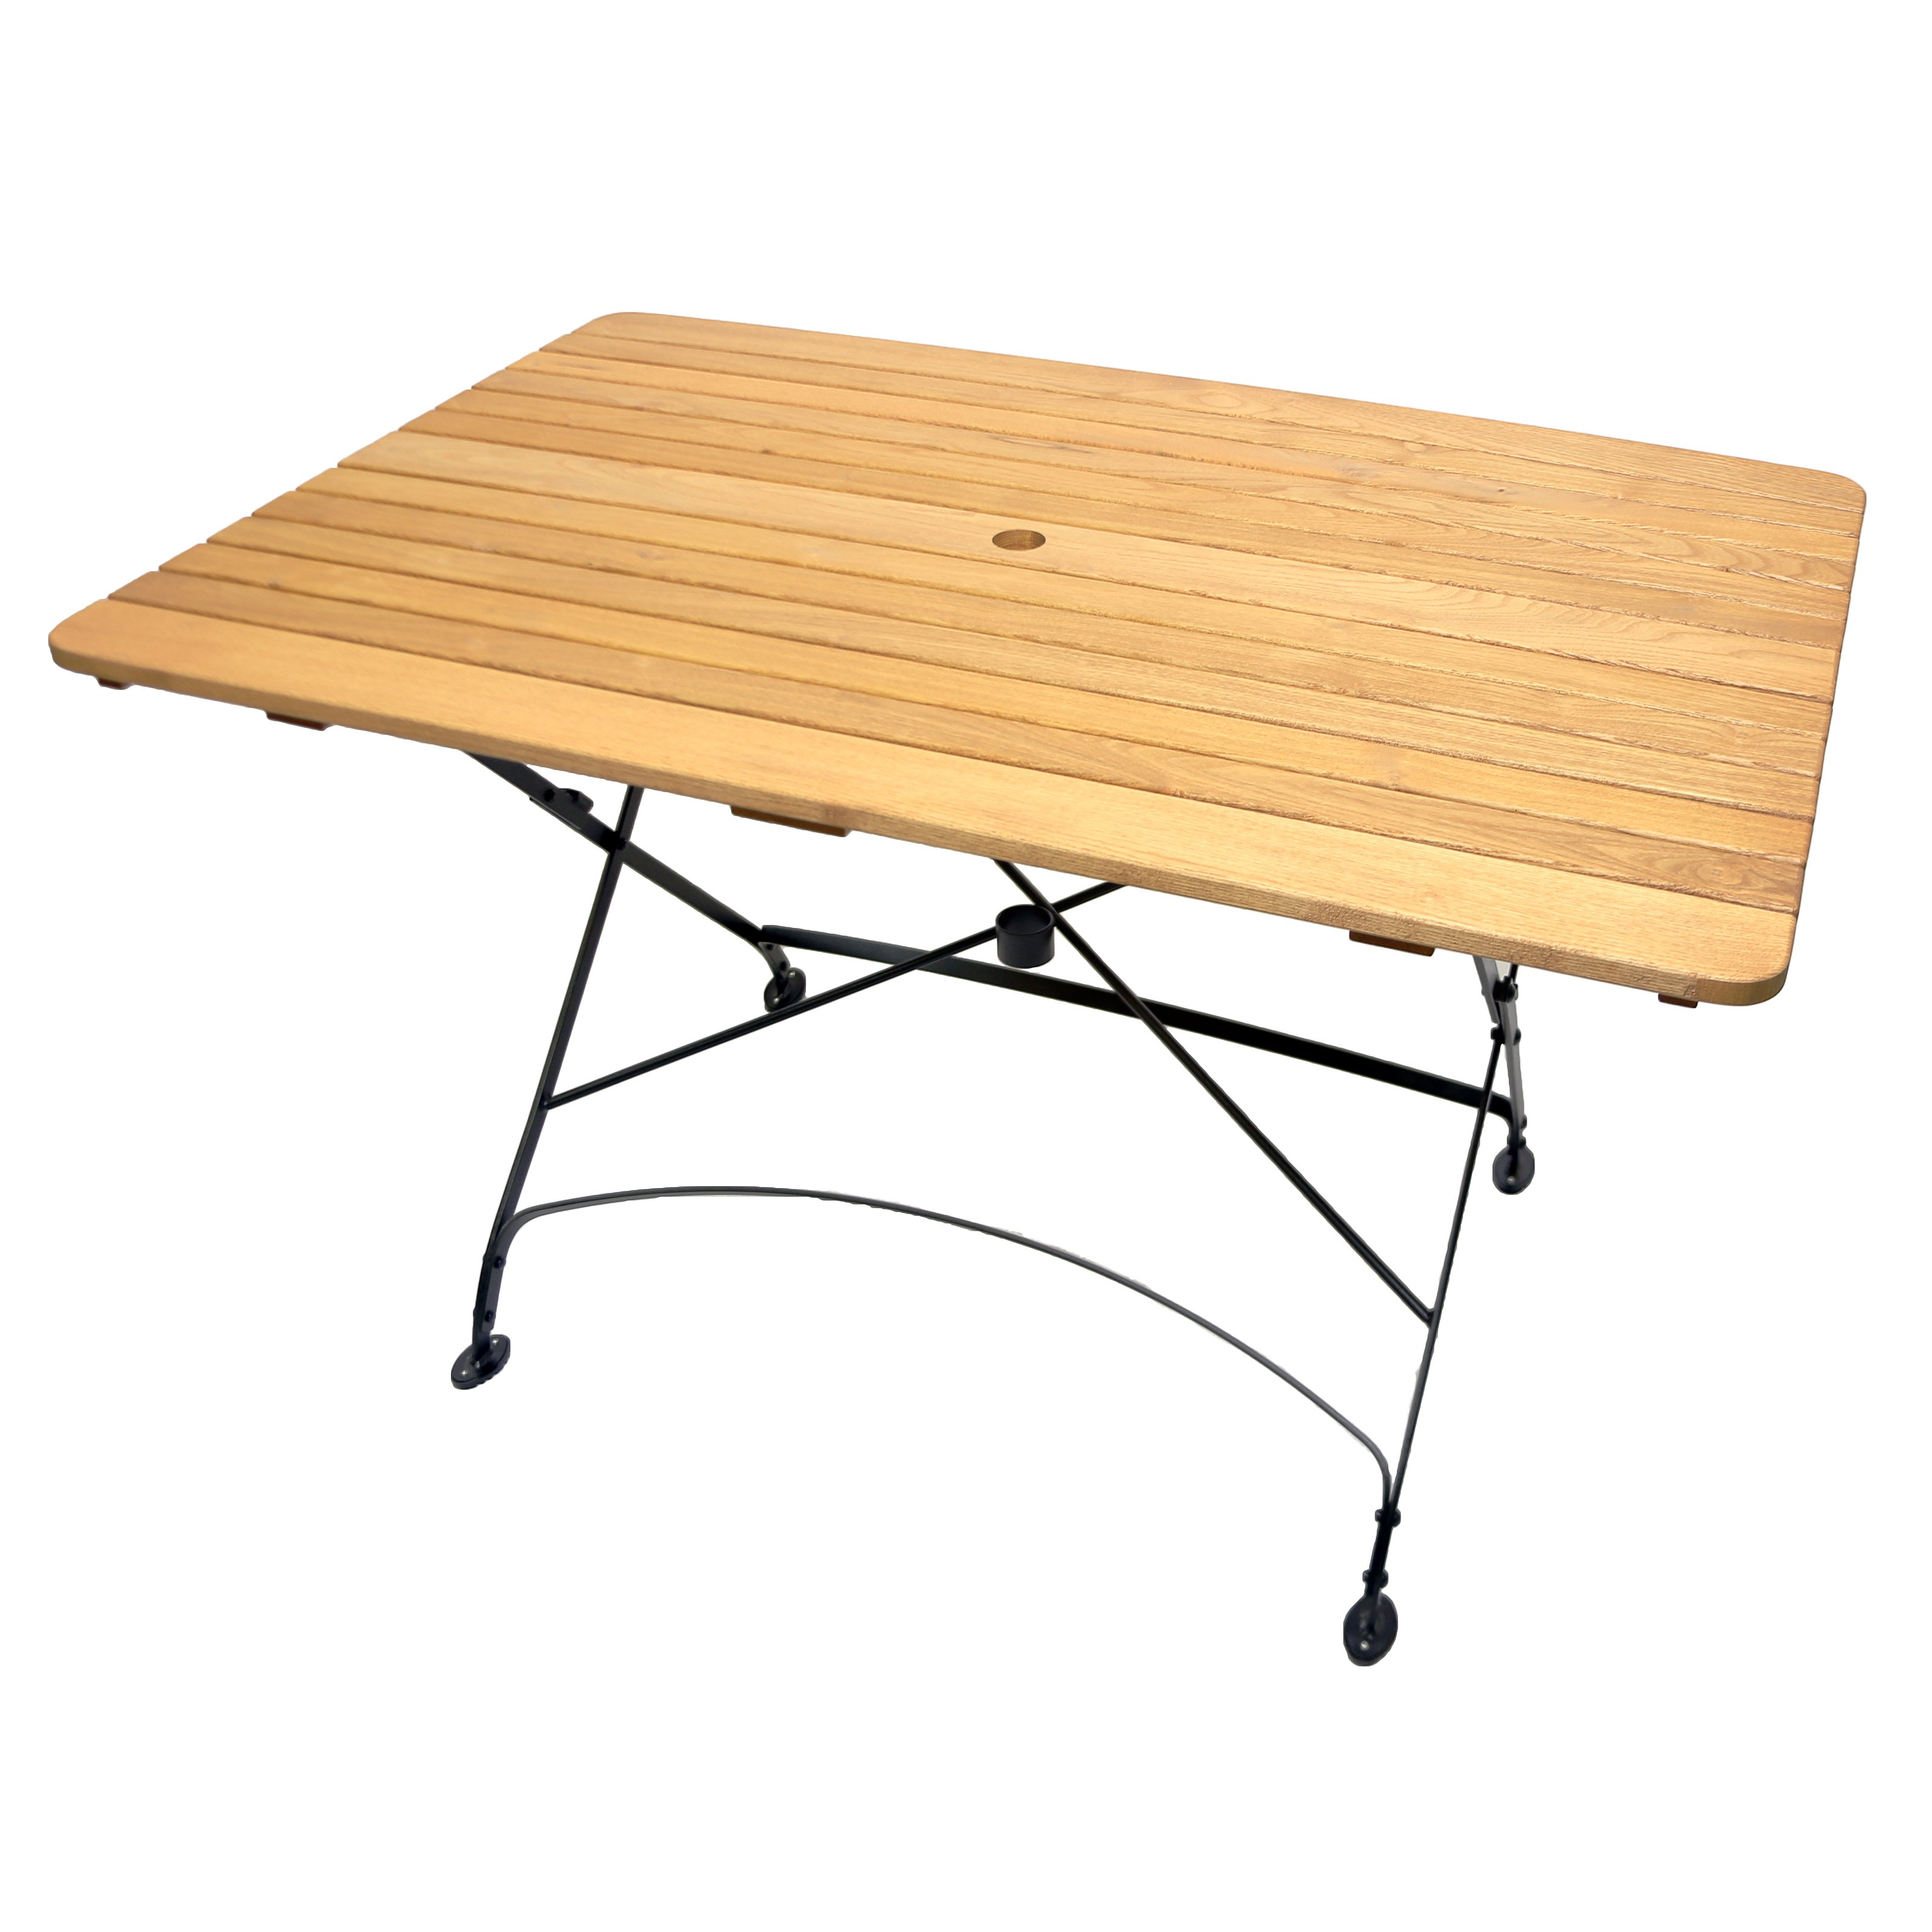 Haste Garden Rebecca Rectangular Folding Table